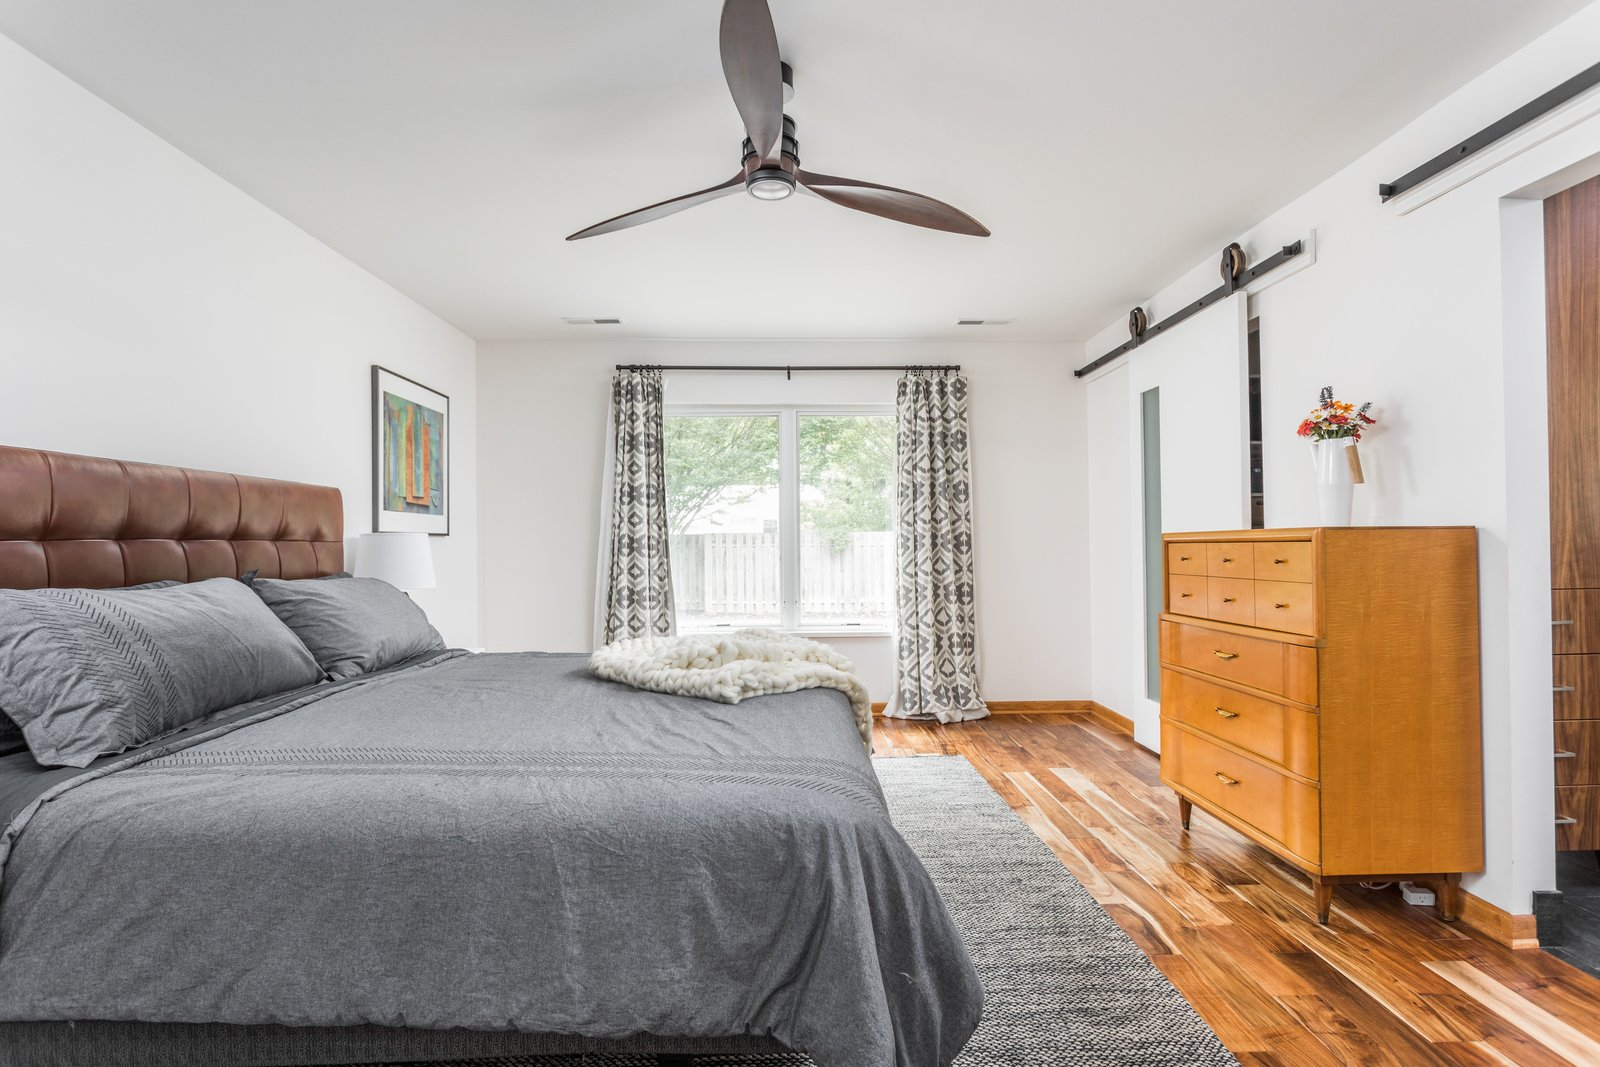 when-we-found-a-home-with-two-bedrooms-we-figured-it-would-be-way-more-fun-to-add-on-a-master-suite-that-would-meet-our-needs-and-also-style-notes-leanne.jpg